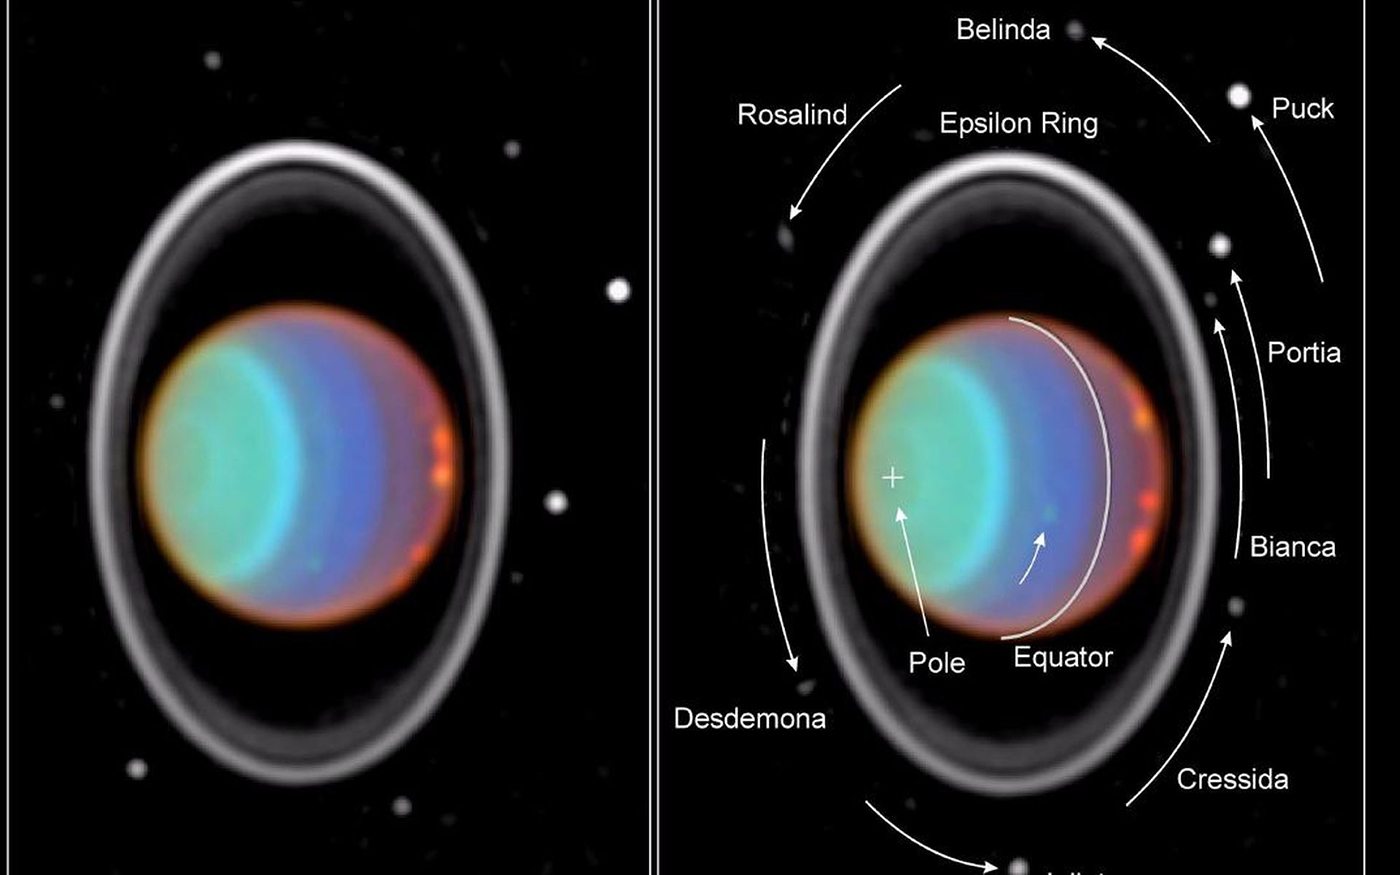 Hubble image of Uranus satellites.